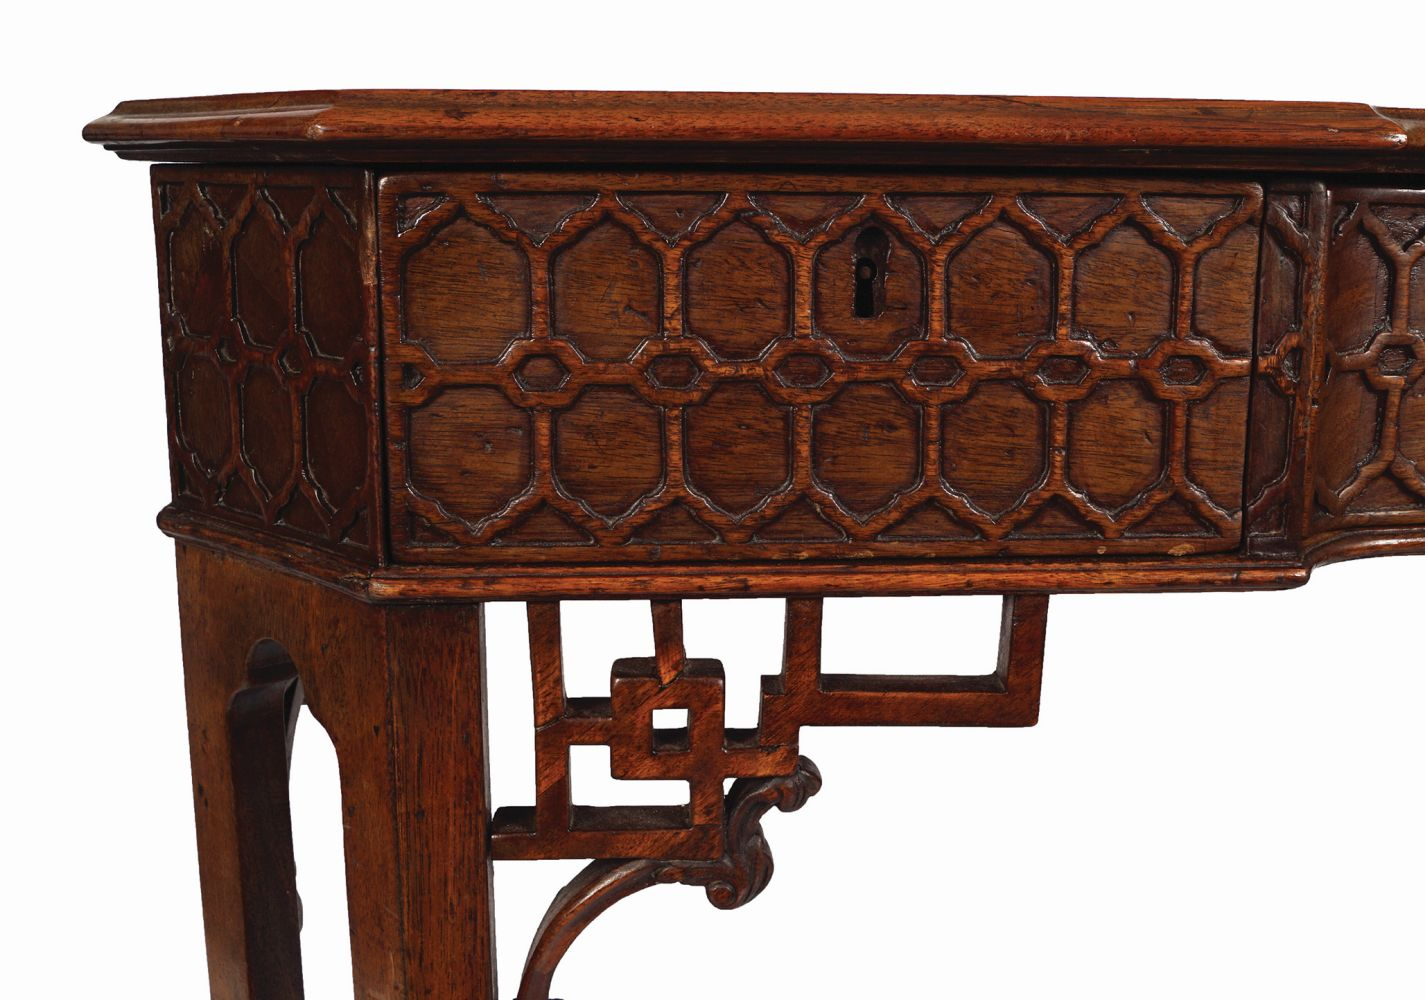 18TH-CENTURY PERIOD CHINESE CHIPPENDALE TABLE - Image 5 of 7